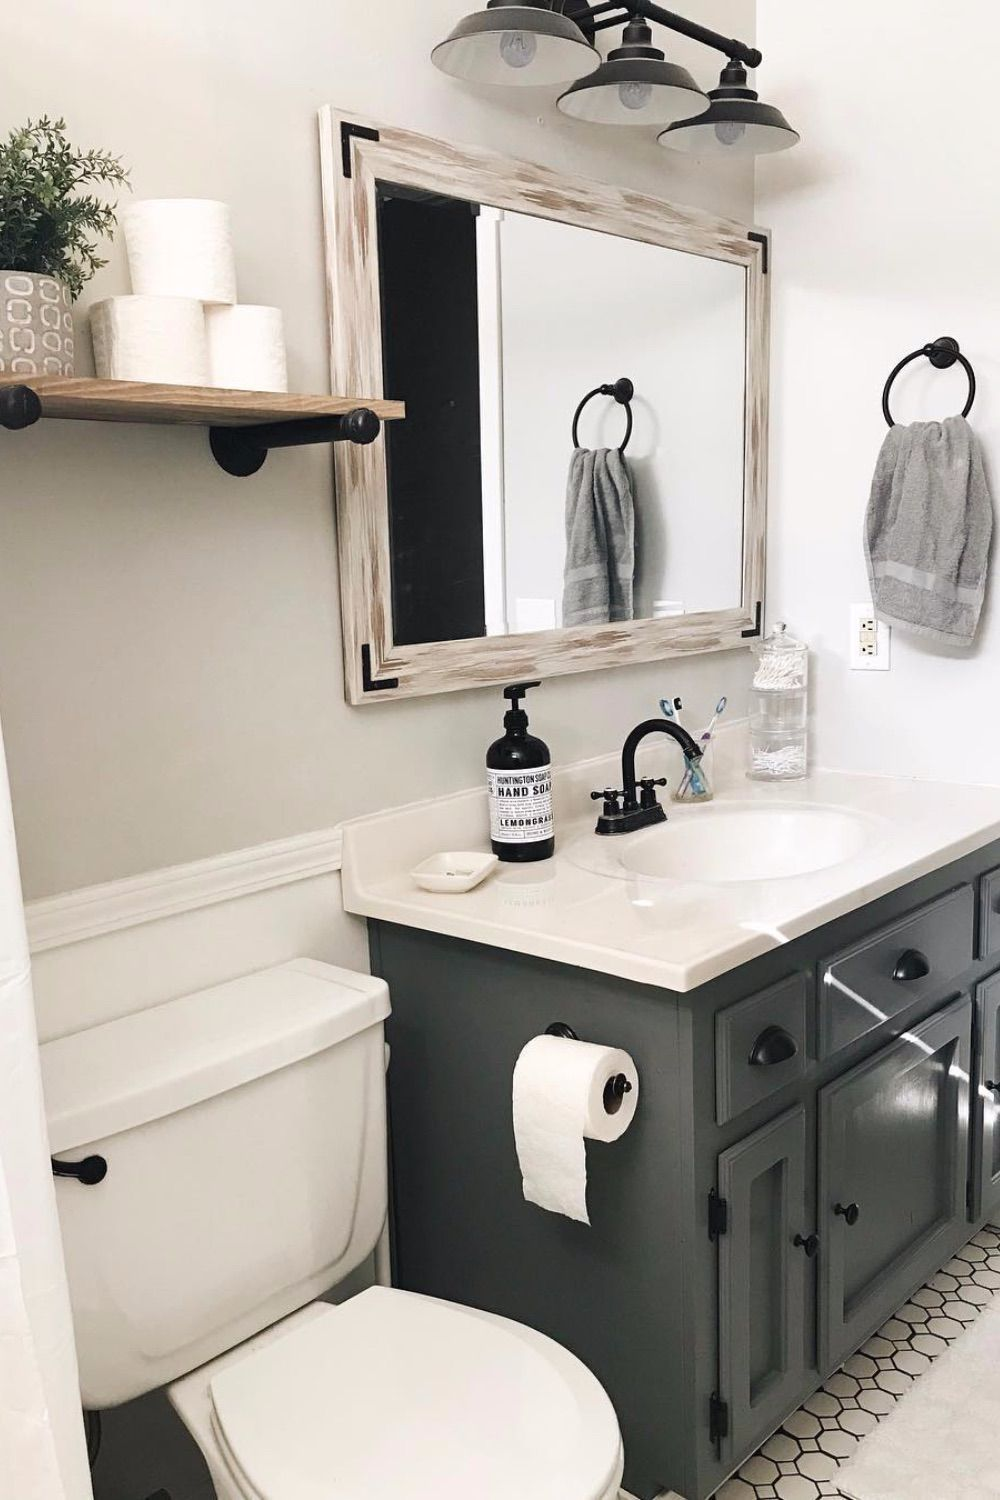 Click For Guest Bathroom Ideas That Are Easy To Do Swankyden Com 2020 Bathroom Decor Guest Bathrooms Upstairs Bathrooms